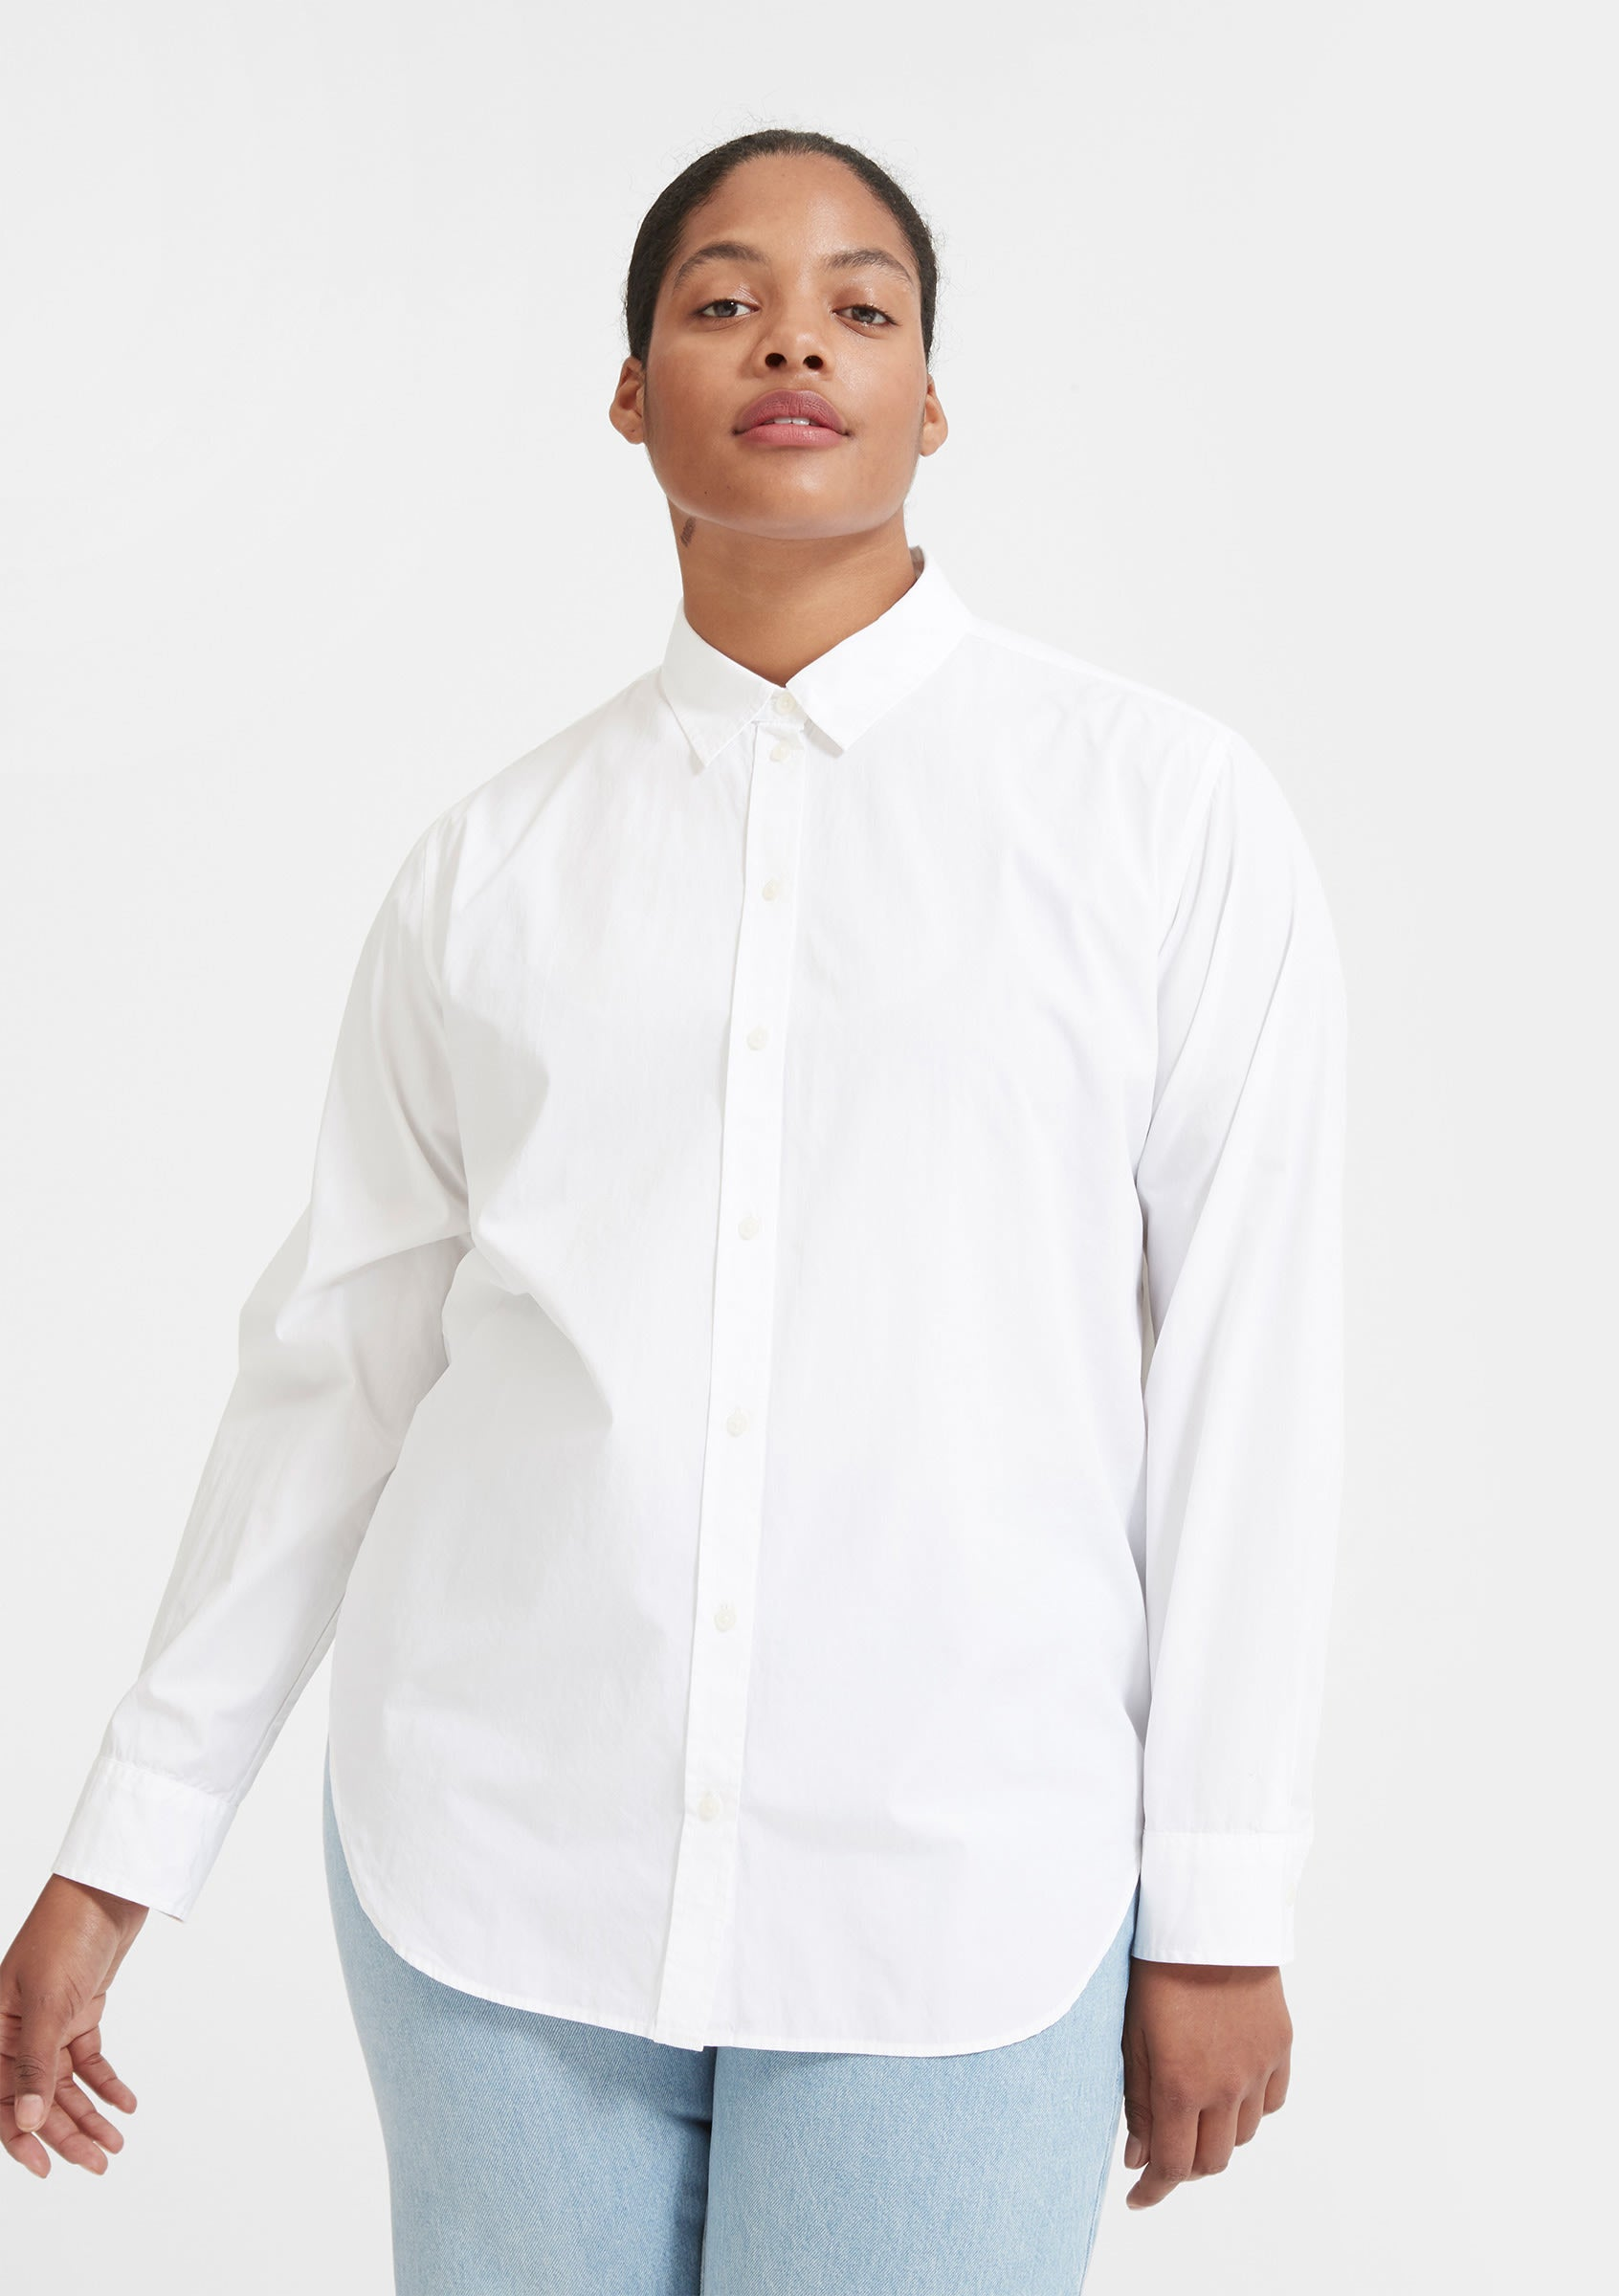 model in white long-sleeve button-up